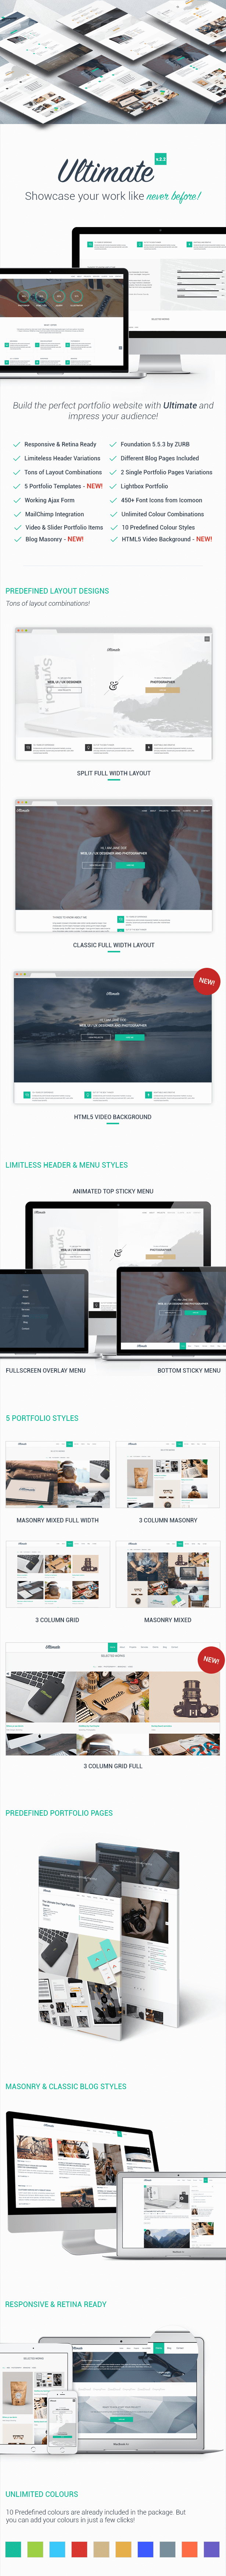 Ultimate - One Page HTML5 Portfolio Template - 2